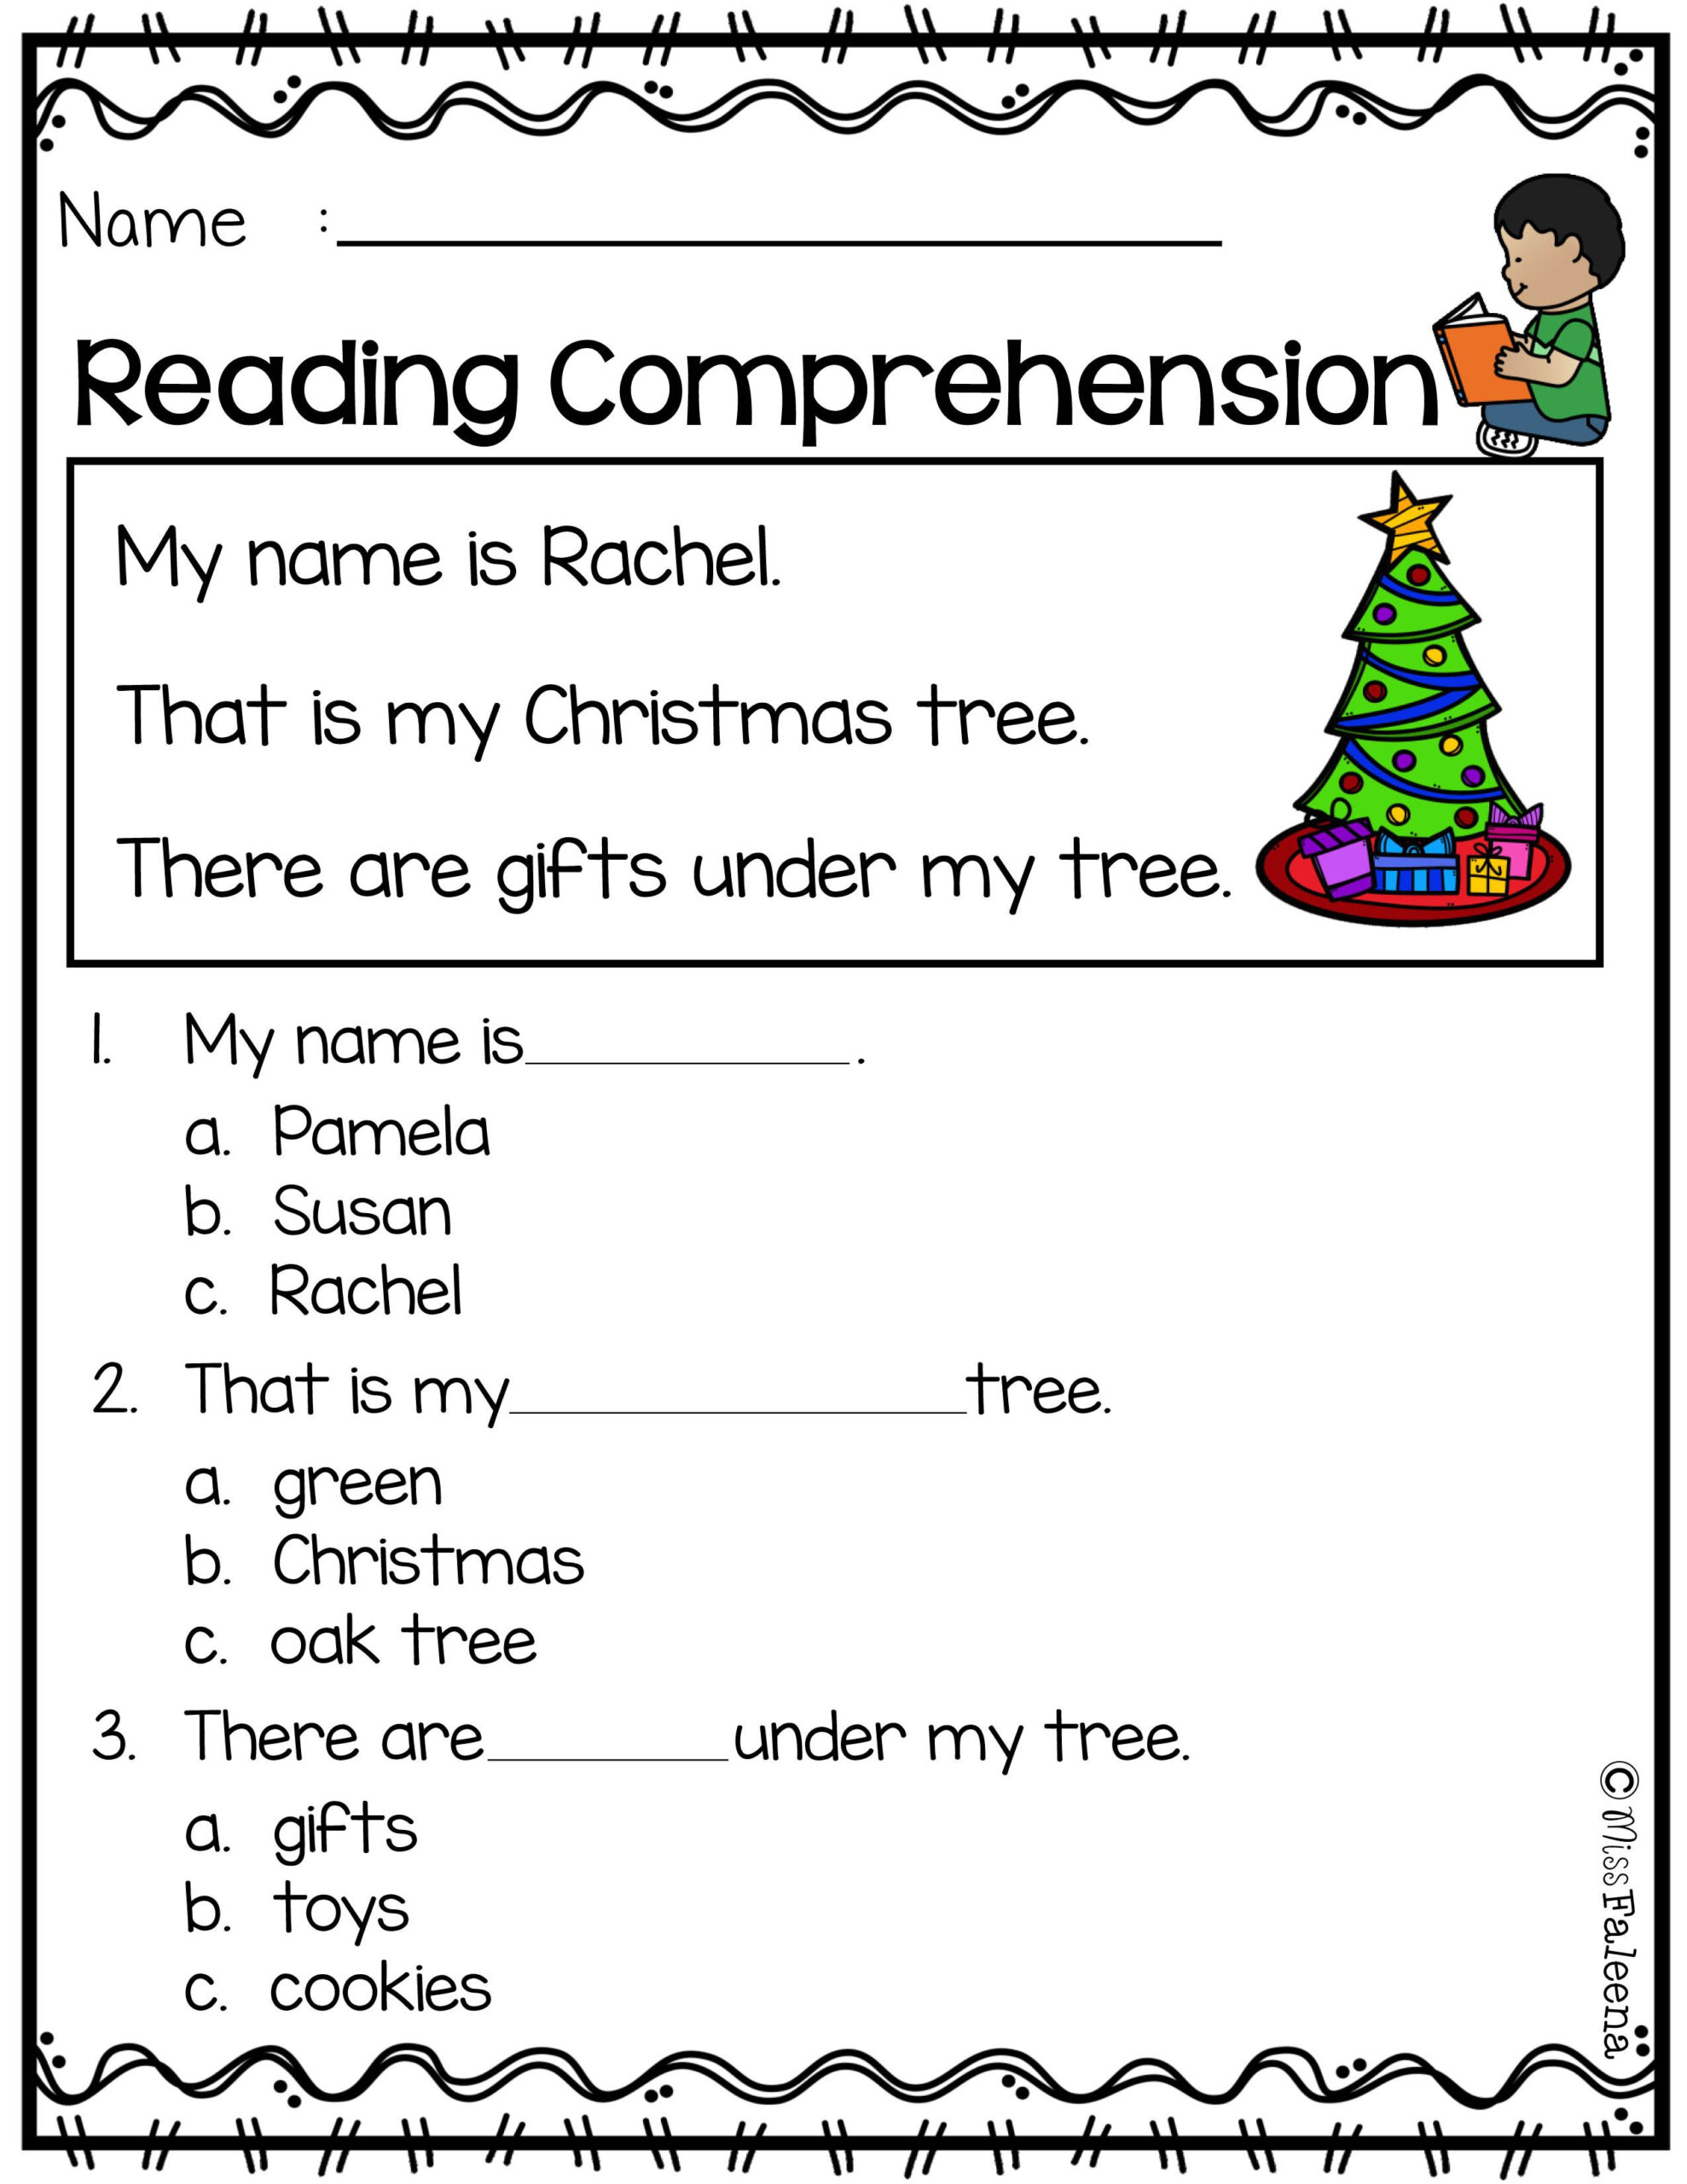 hight resolution of 5th Grade Christmas Language Worksheets   Printable Worksheets and  Activities for Teachers